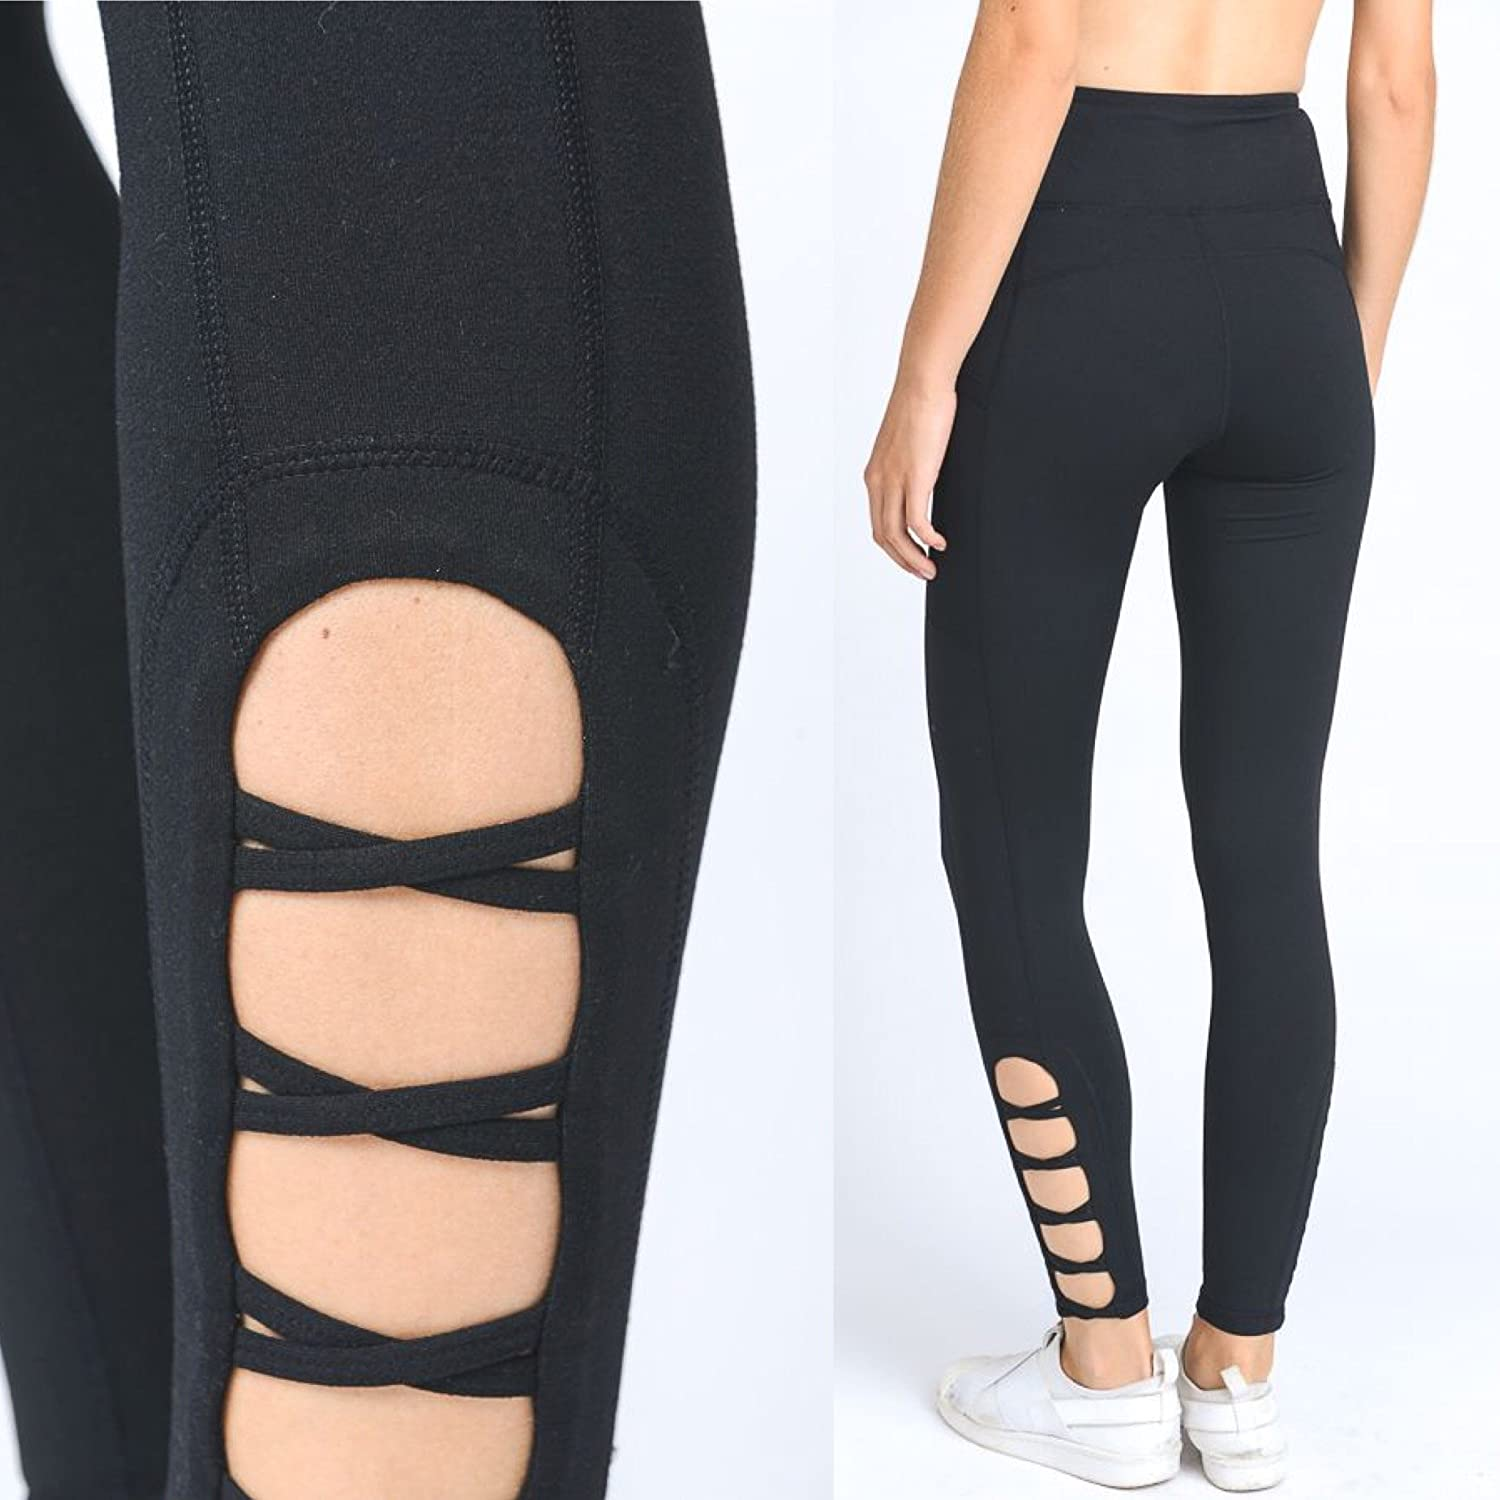 High Waist Crisscross Yoga Pants Pockets NOT See Through ...